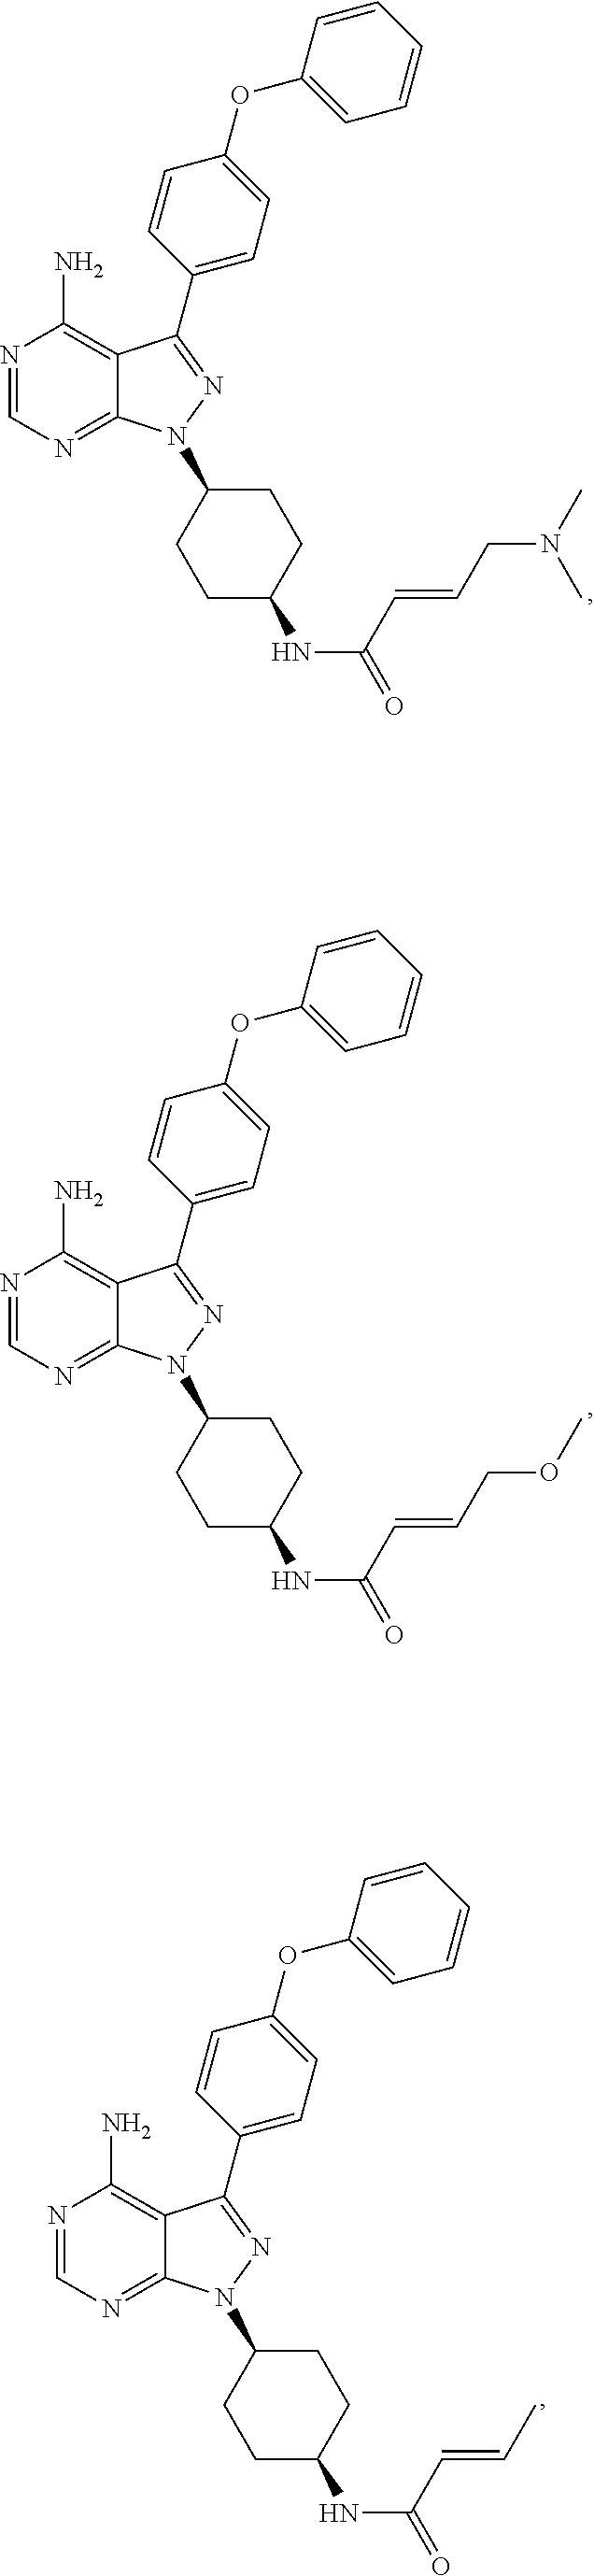 Us20120184013a1 Inhibitors Of Bmx Non Receptor Tyrosine Kinase Fish Simple Foil Circuits Series And Parallel Schematics Figure 20120719 C00050